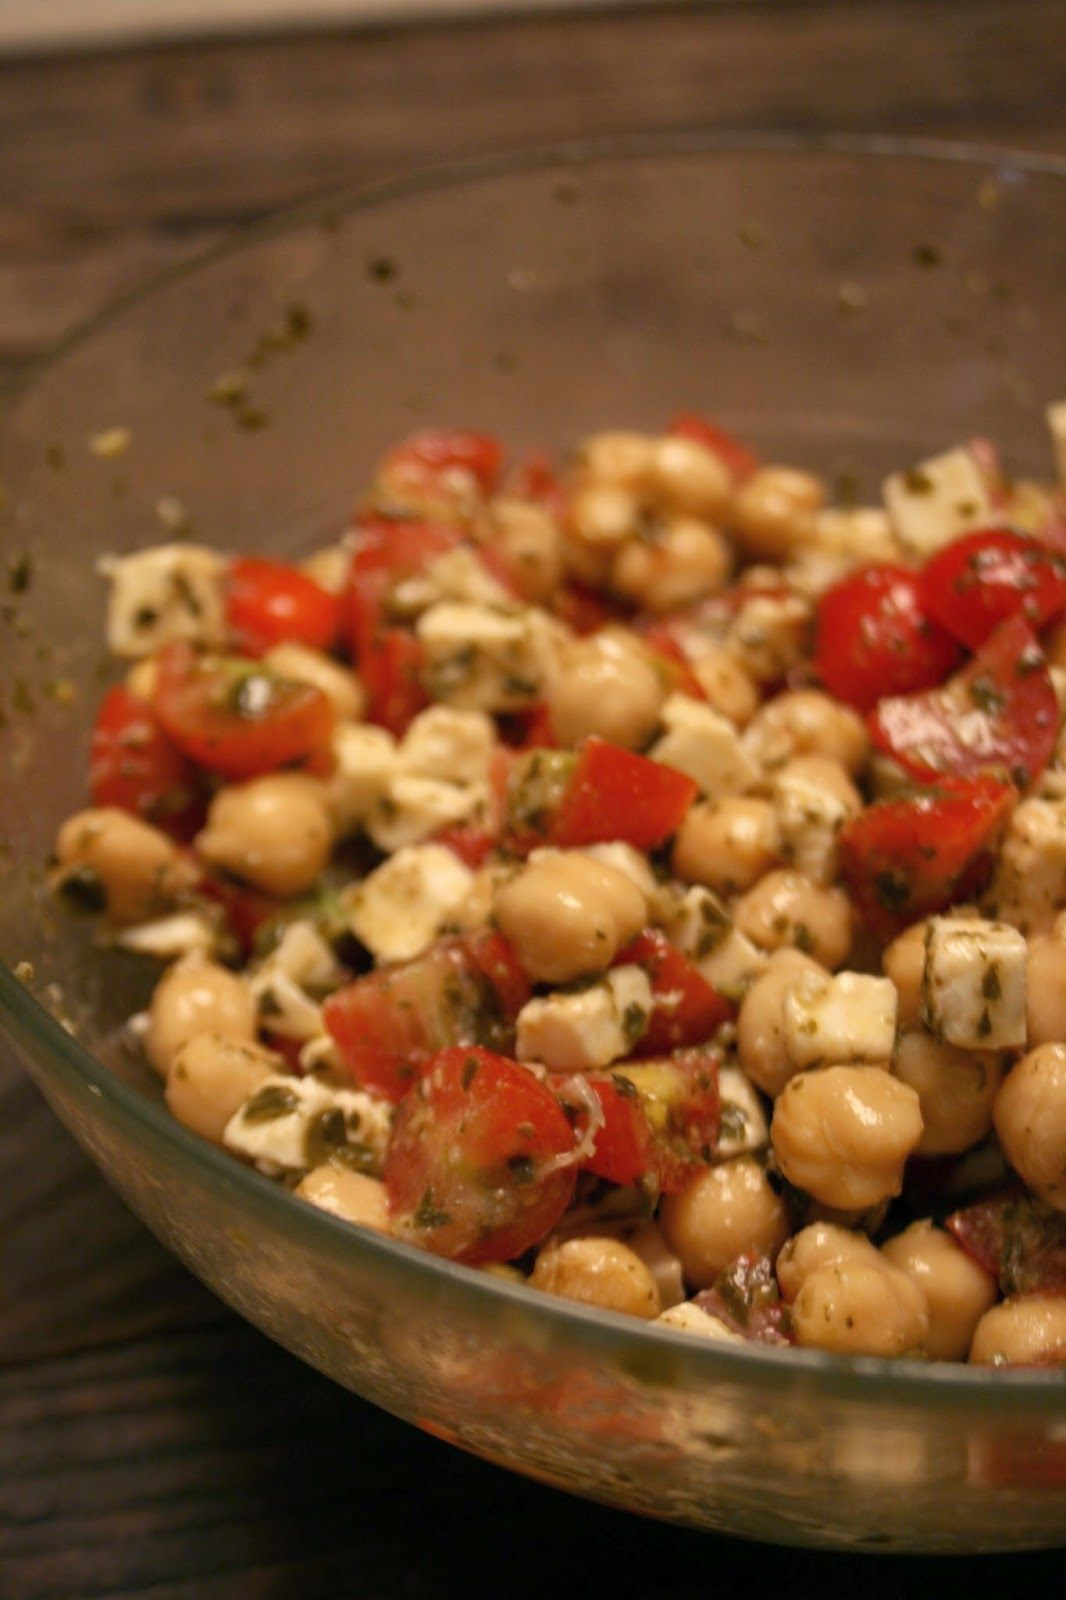 SIMPLE FOUND TREASURES: Chickpea and Pesto Salad with Tomatoes and Mozzarella